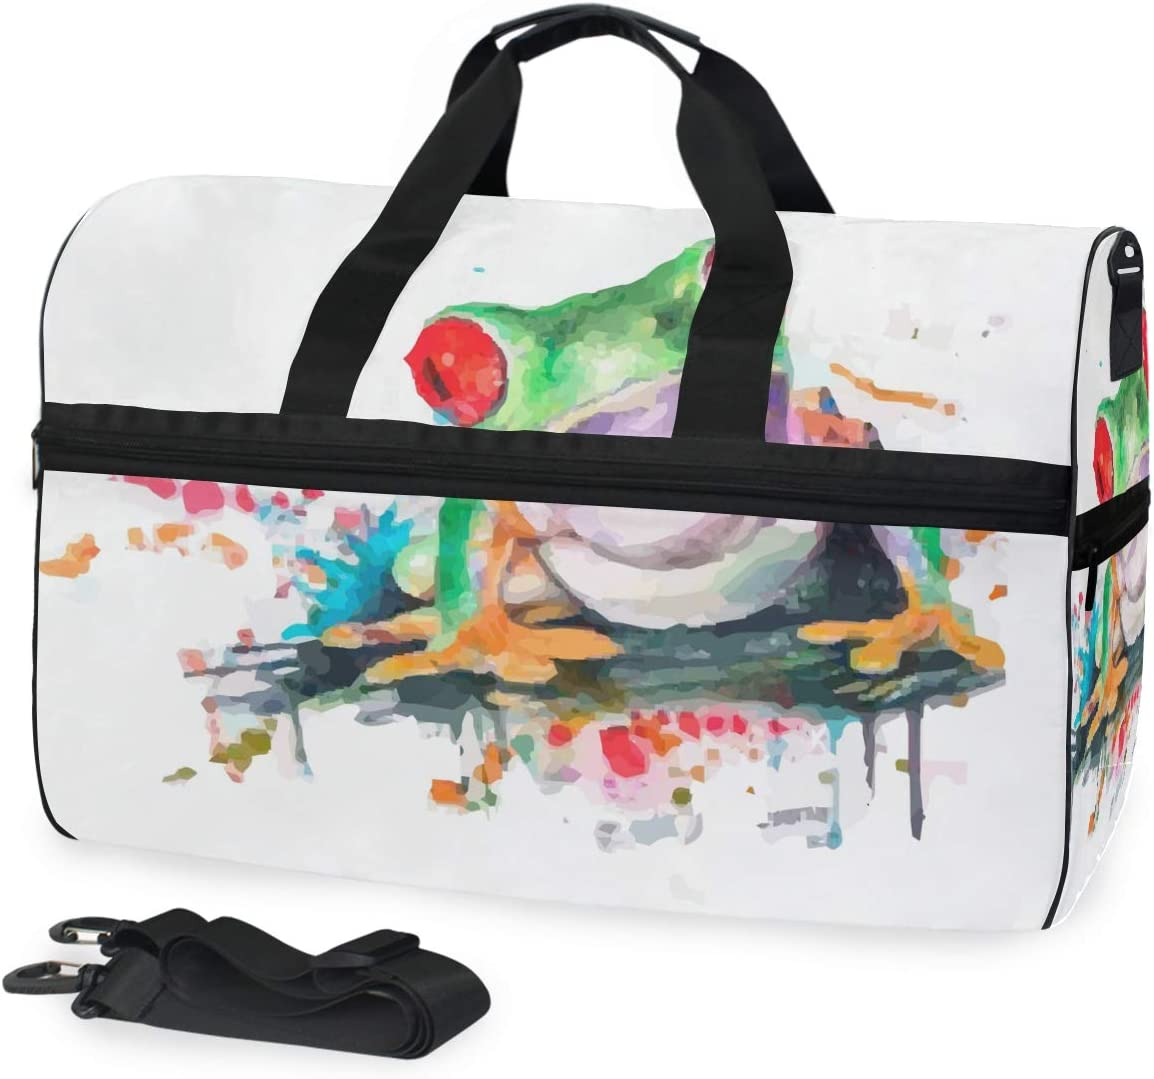 FAJRO Duffle Bag for Women Men Fog Art Painting Travel Duffel Bag Large Size Water-proof Tear Resistant